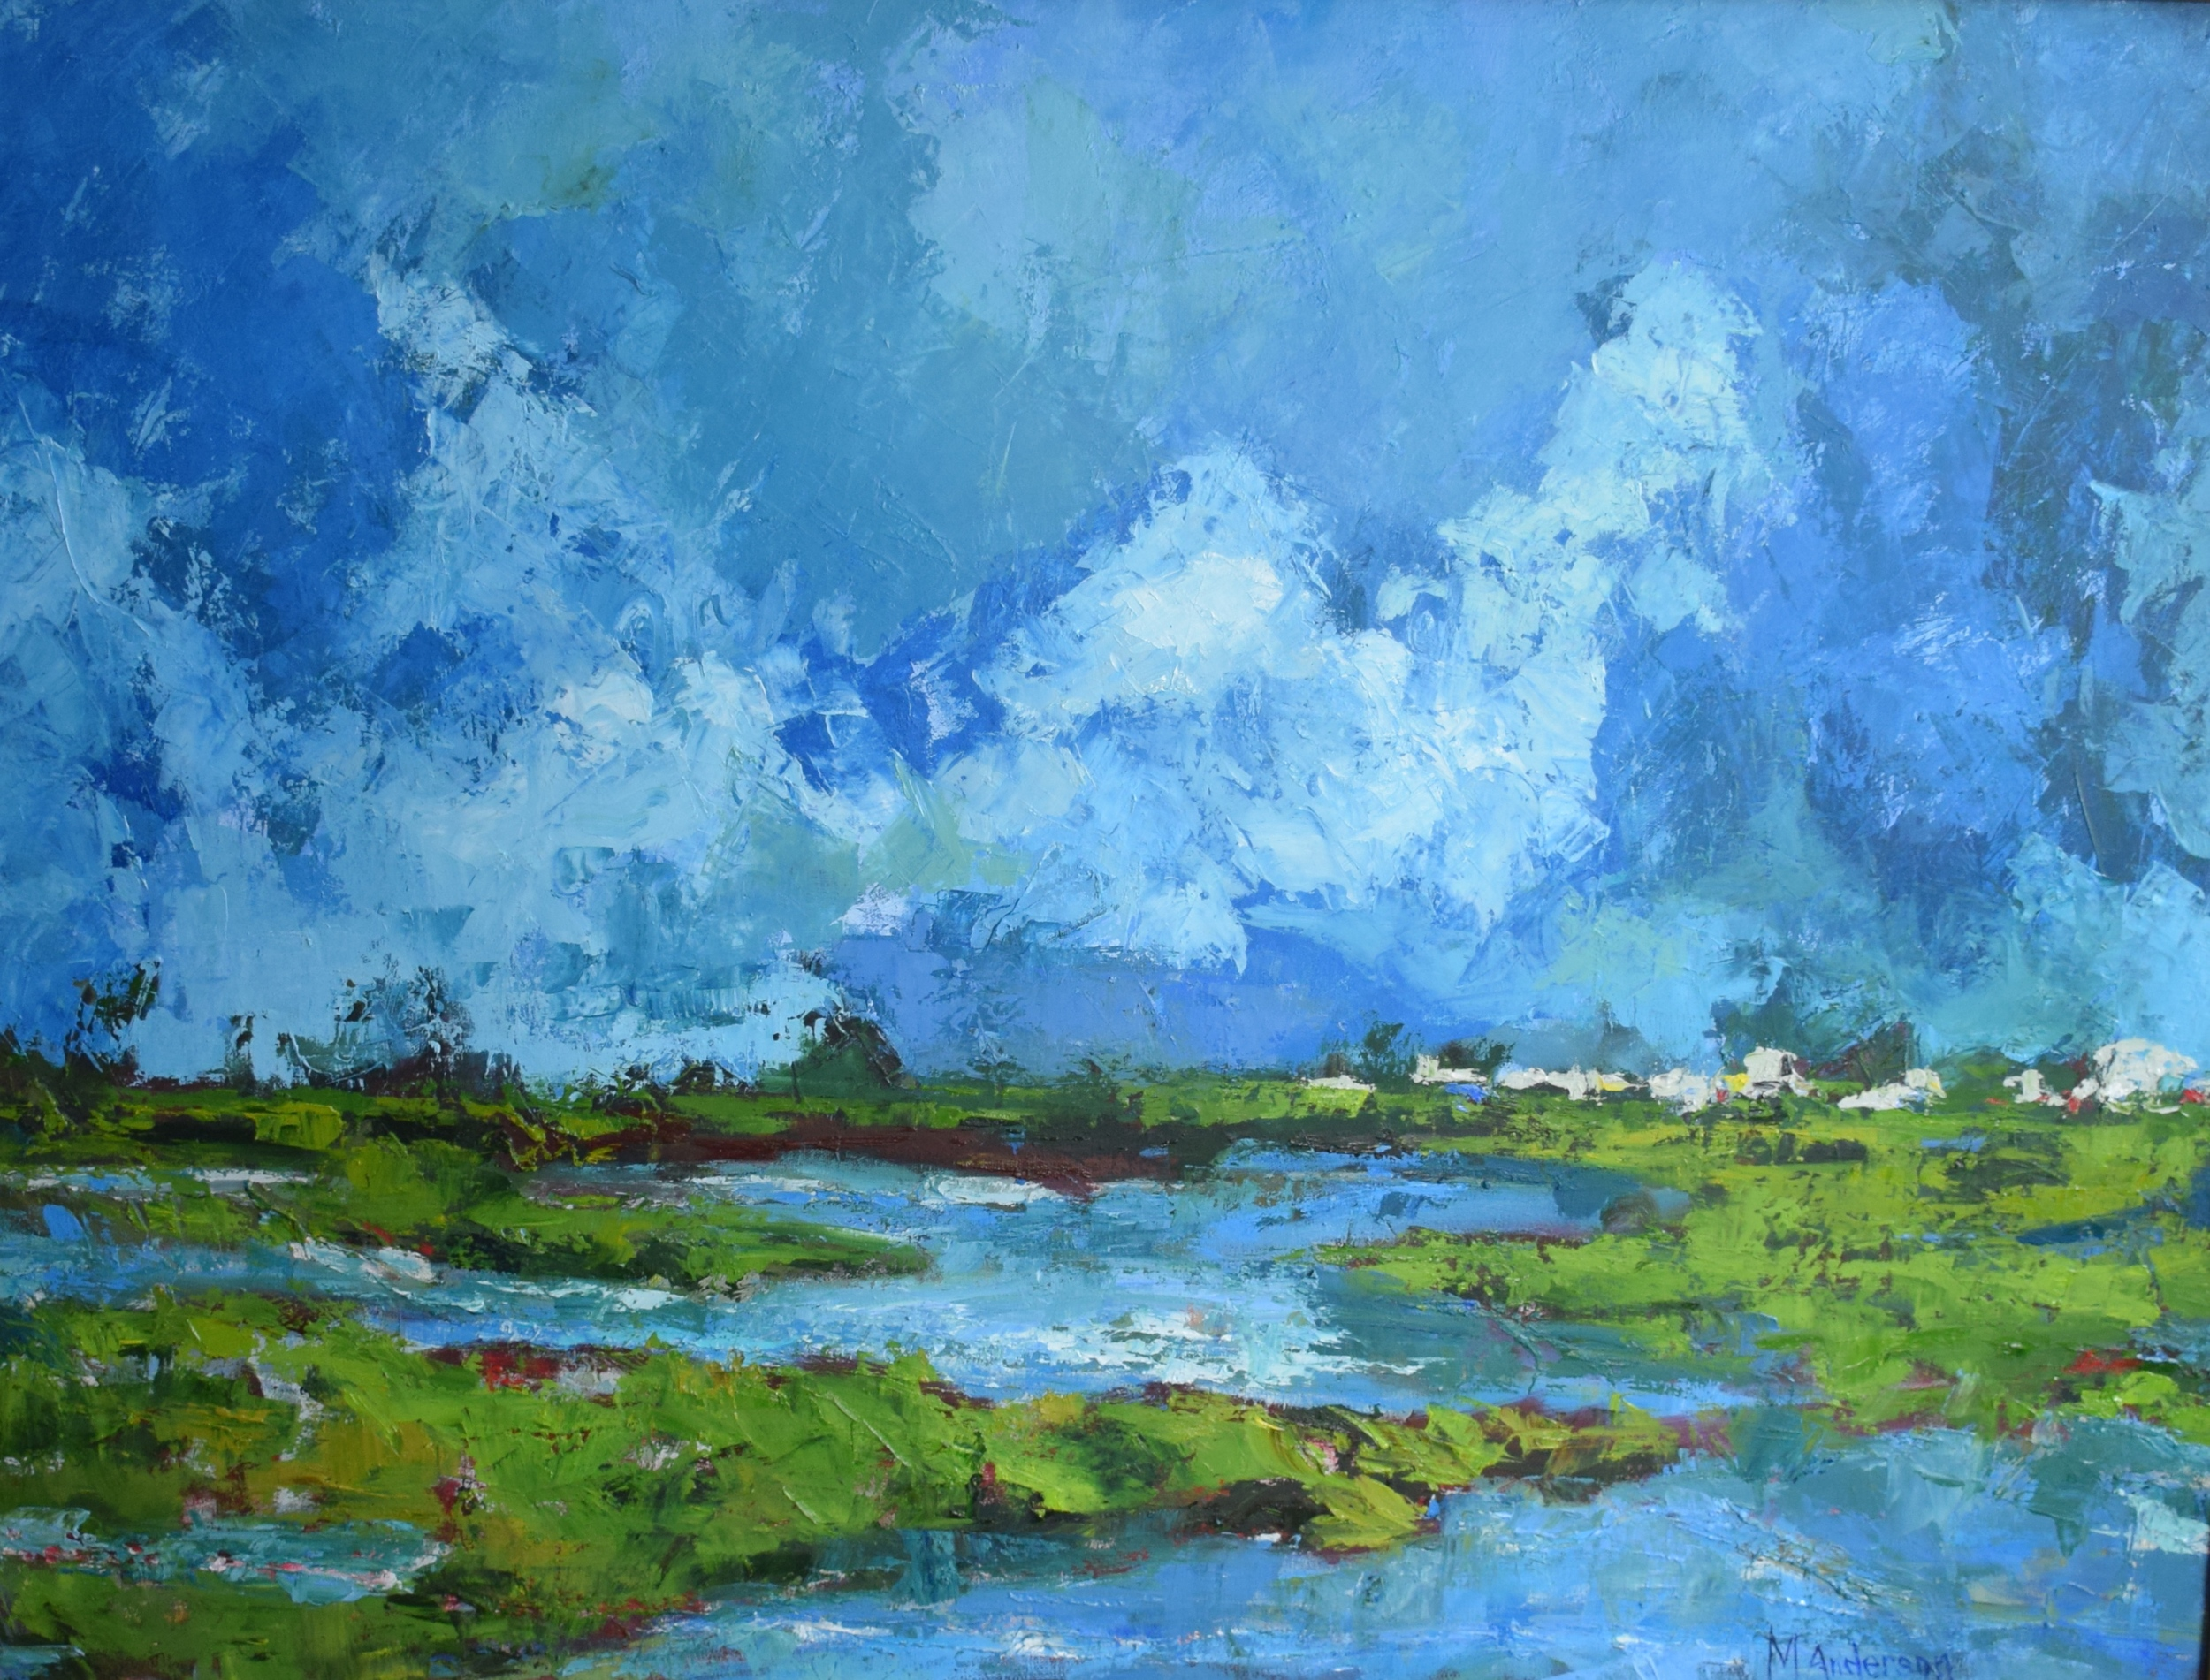 Pawley's (30x40 Canvas) - Sold